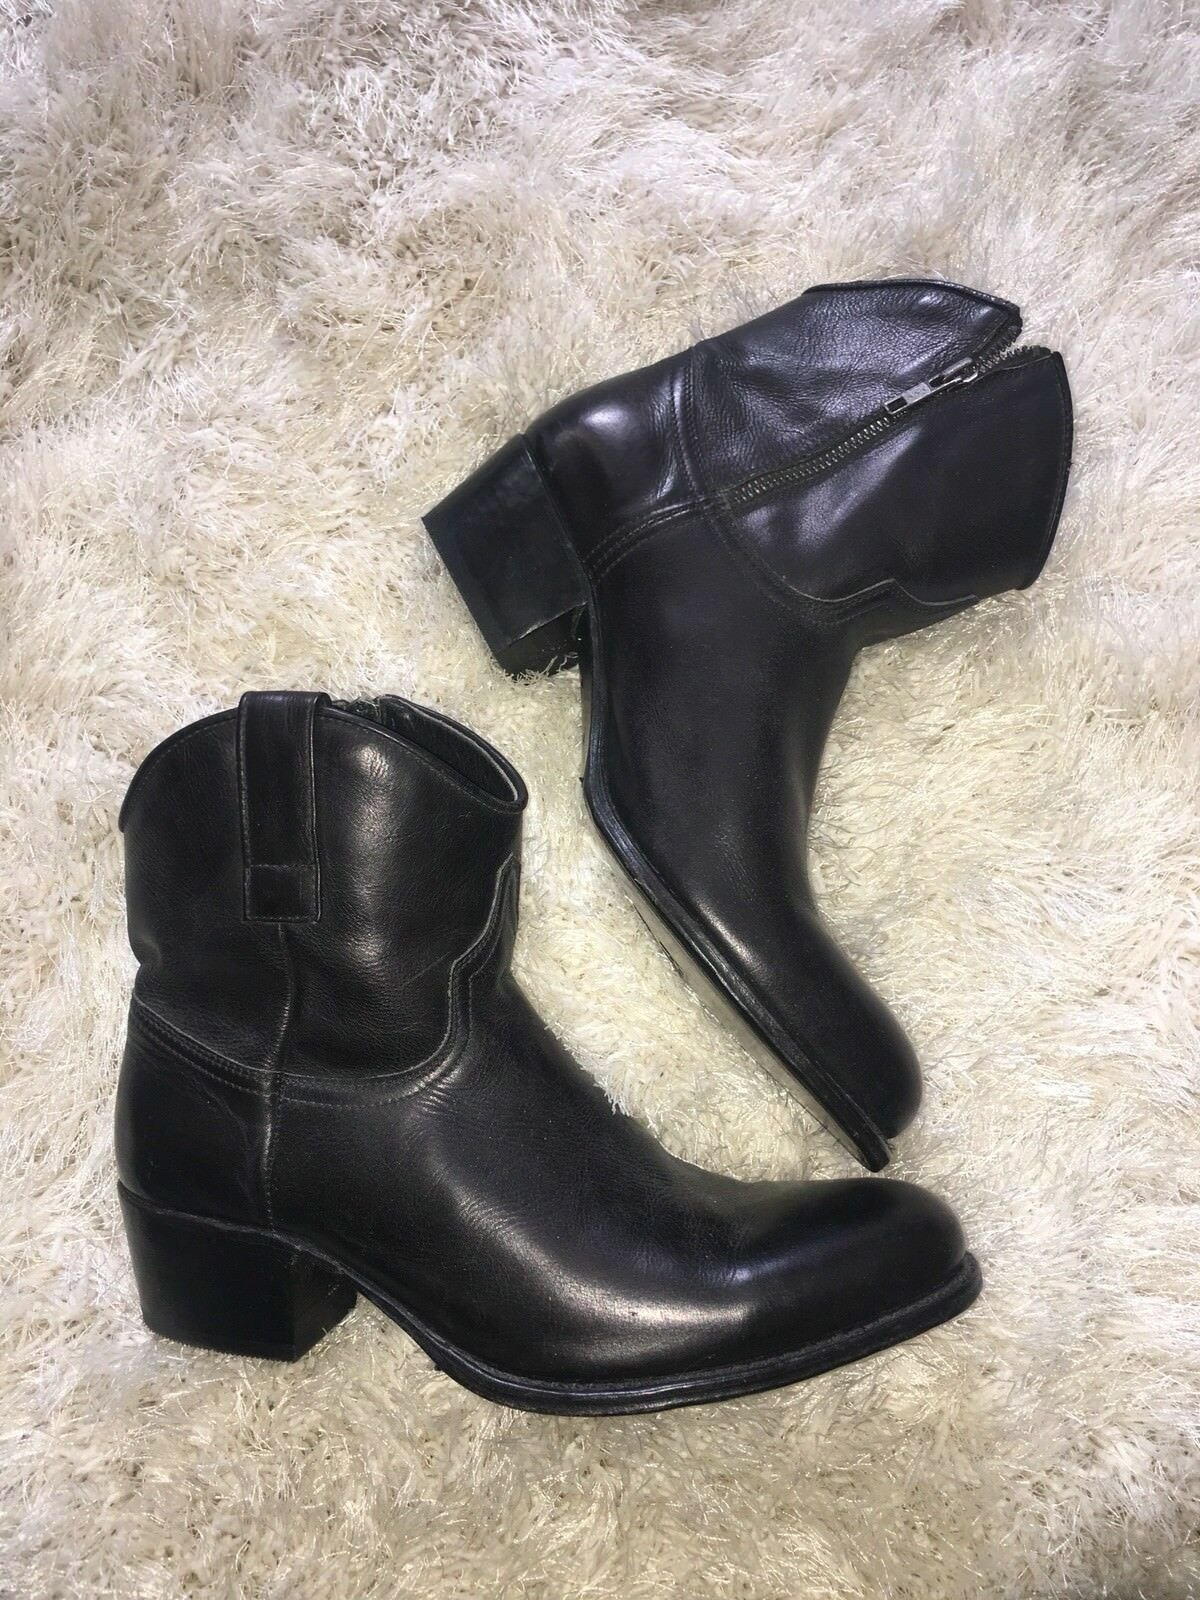 NWOB $350+ FRYE BLACK LEATHER COWBOY BOOTS w/ SIDE ZIPPER 9 - NO RESERVE!!